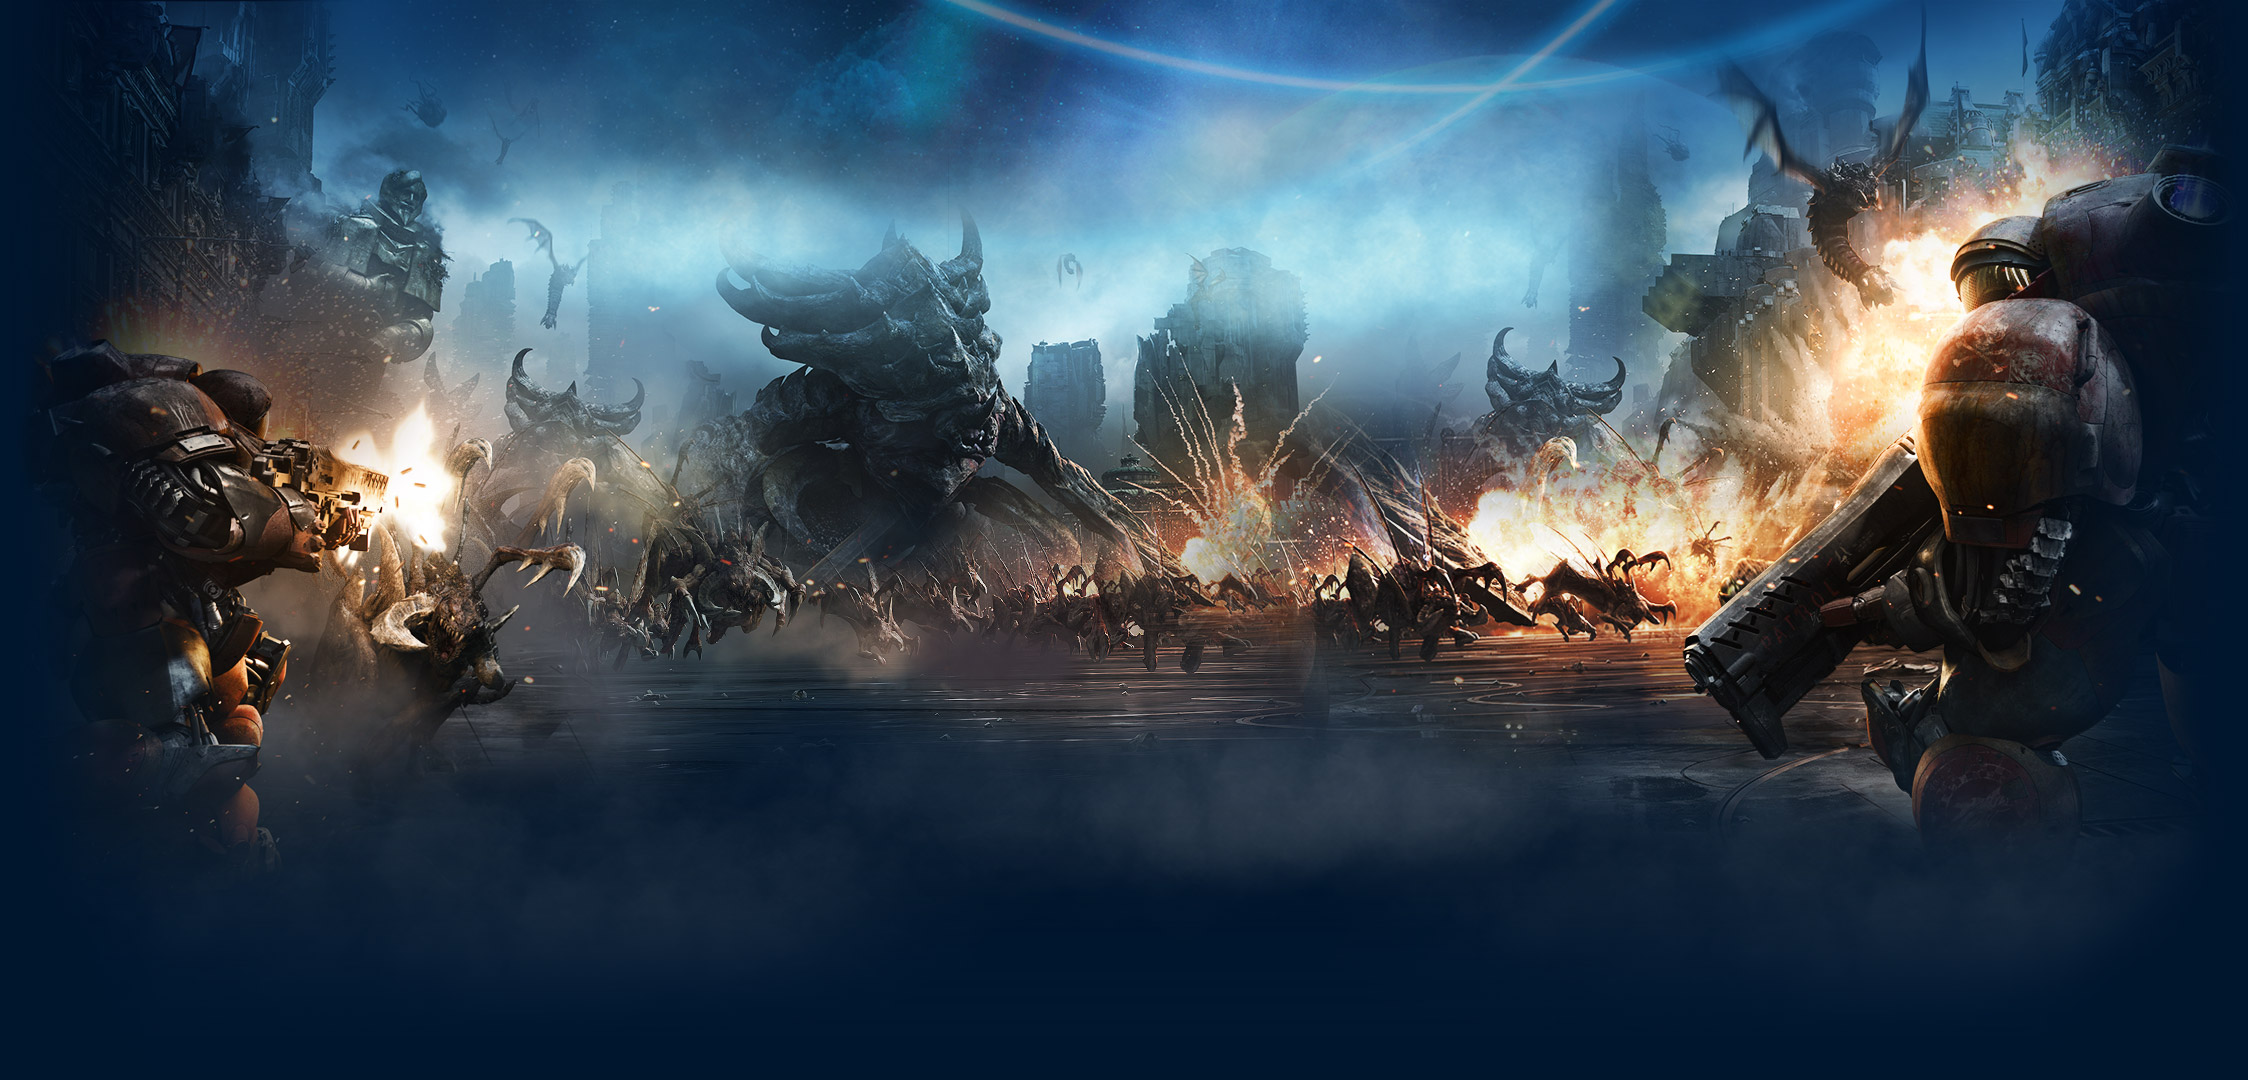 Starcraft II Wallpapers, Pictures, Images